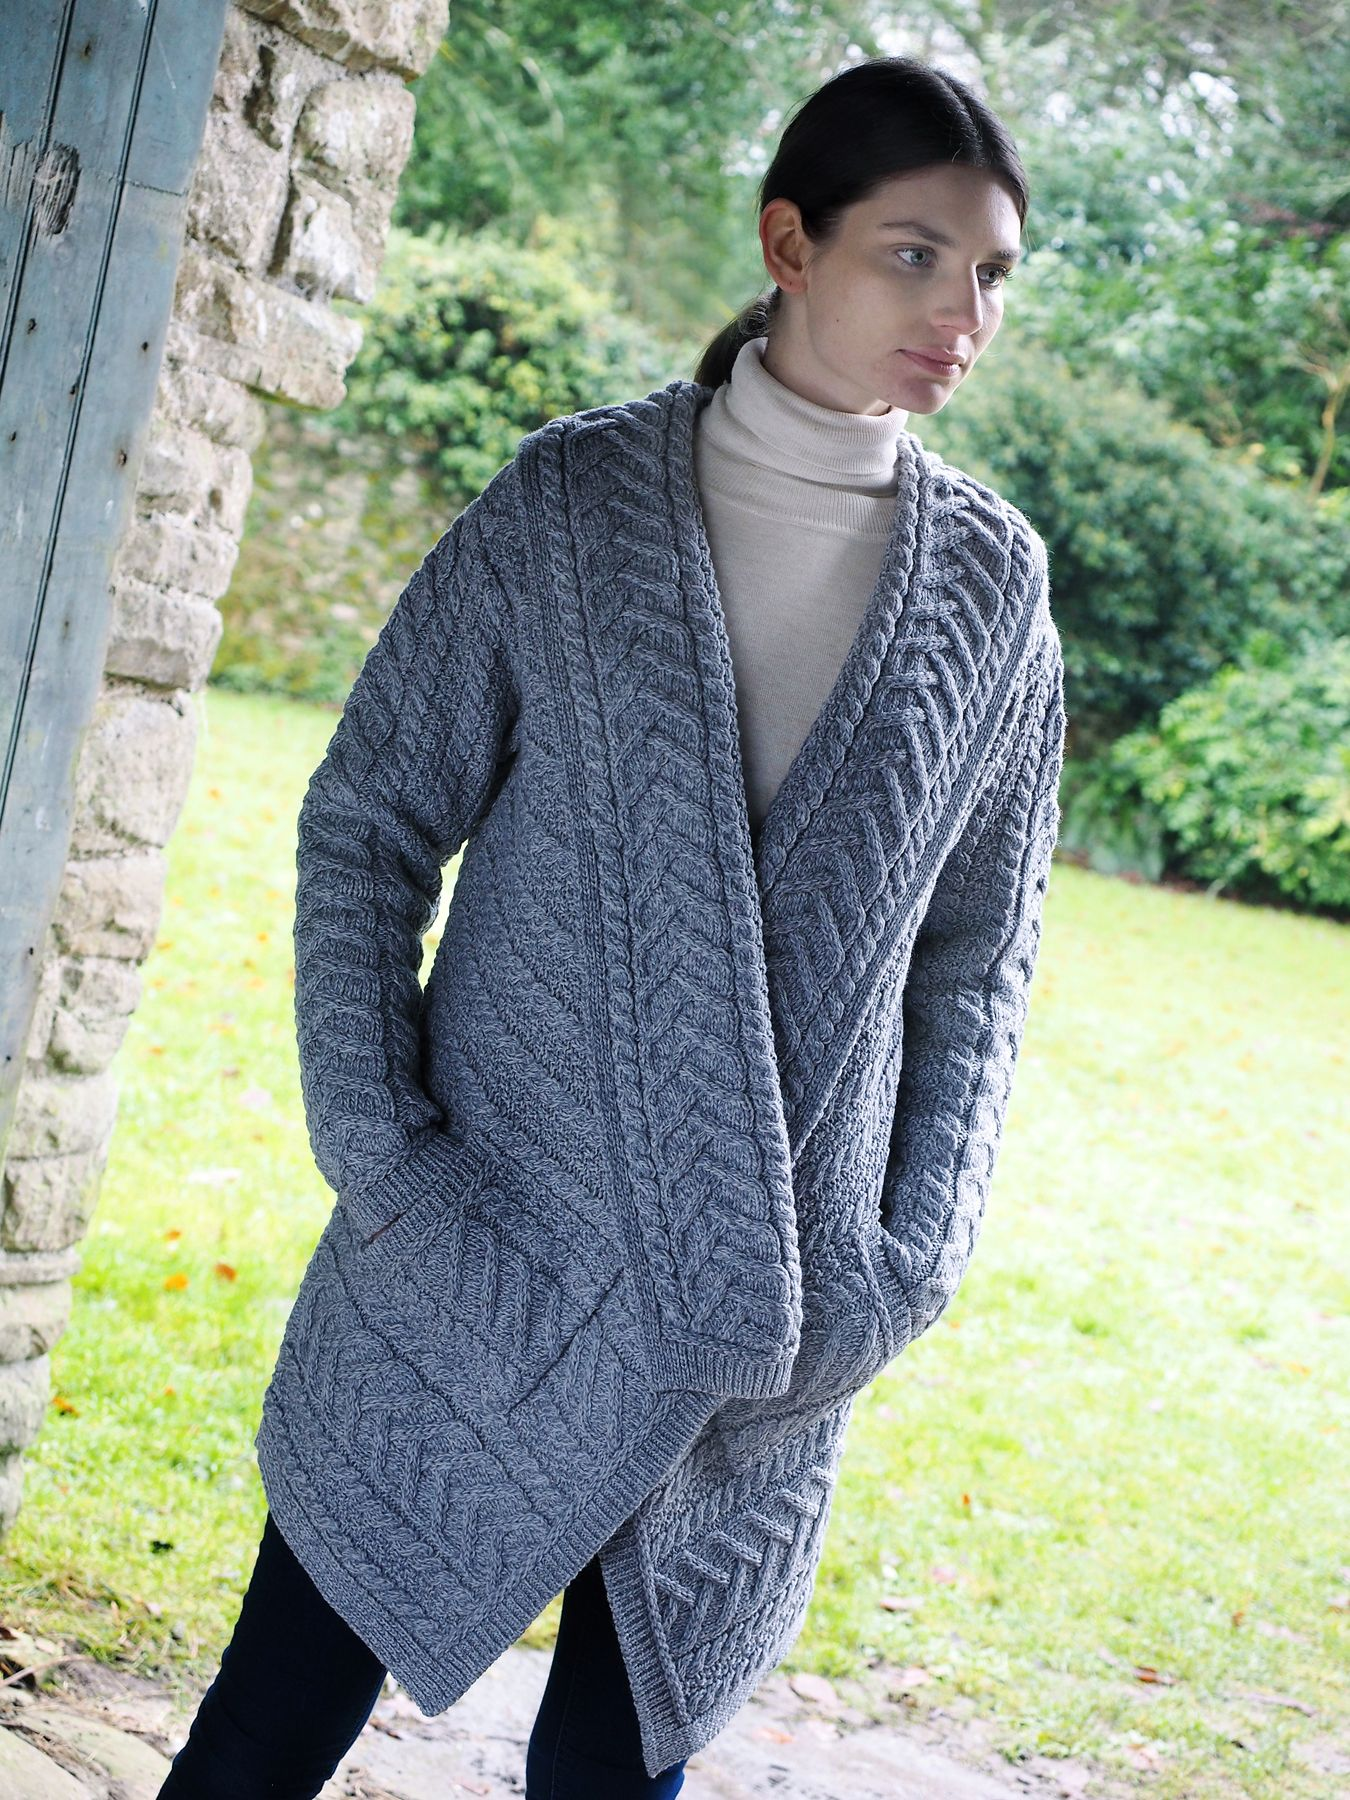 Ladies Aran Waterfall Cardigan by Natallia Kulikouskaya for ...